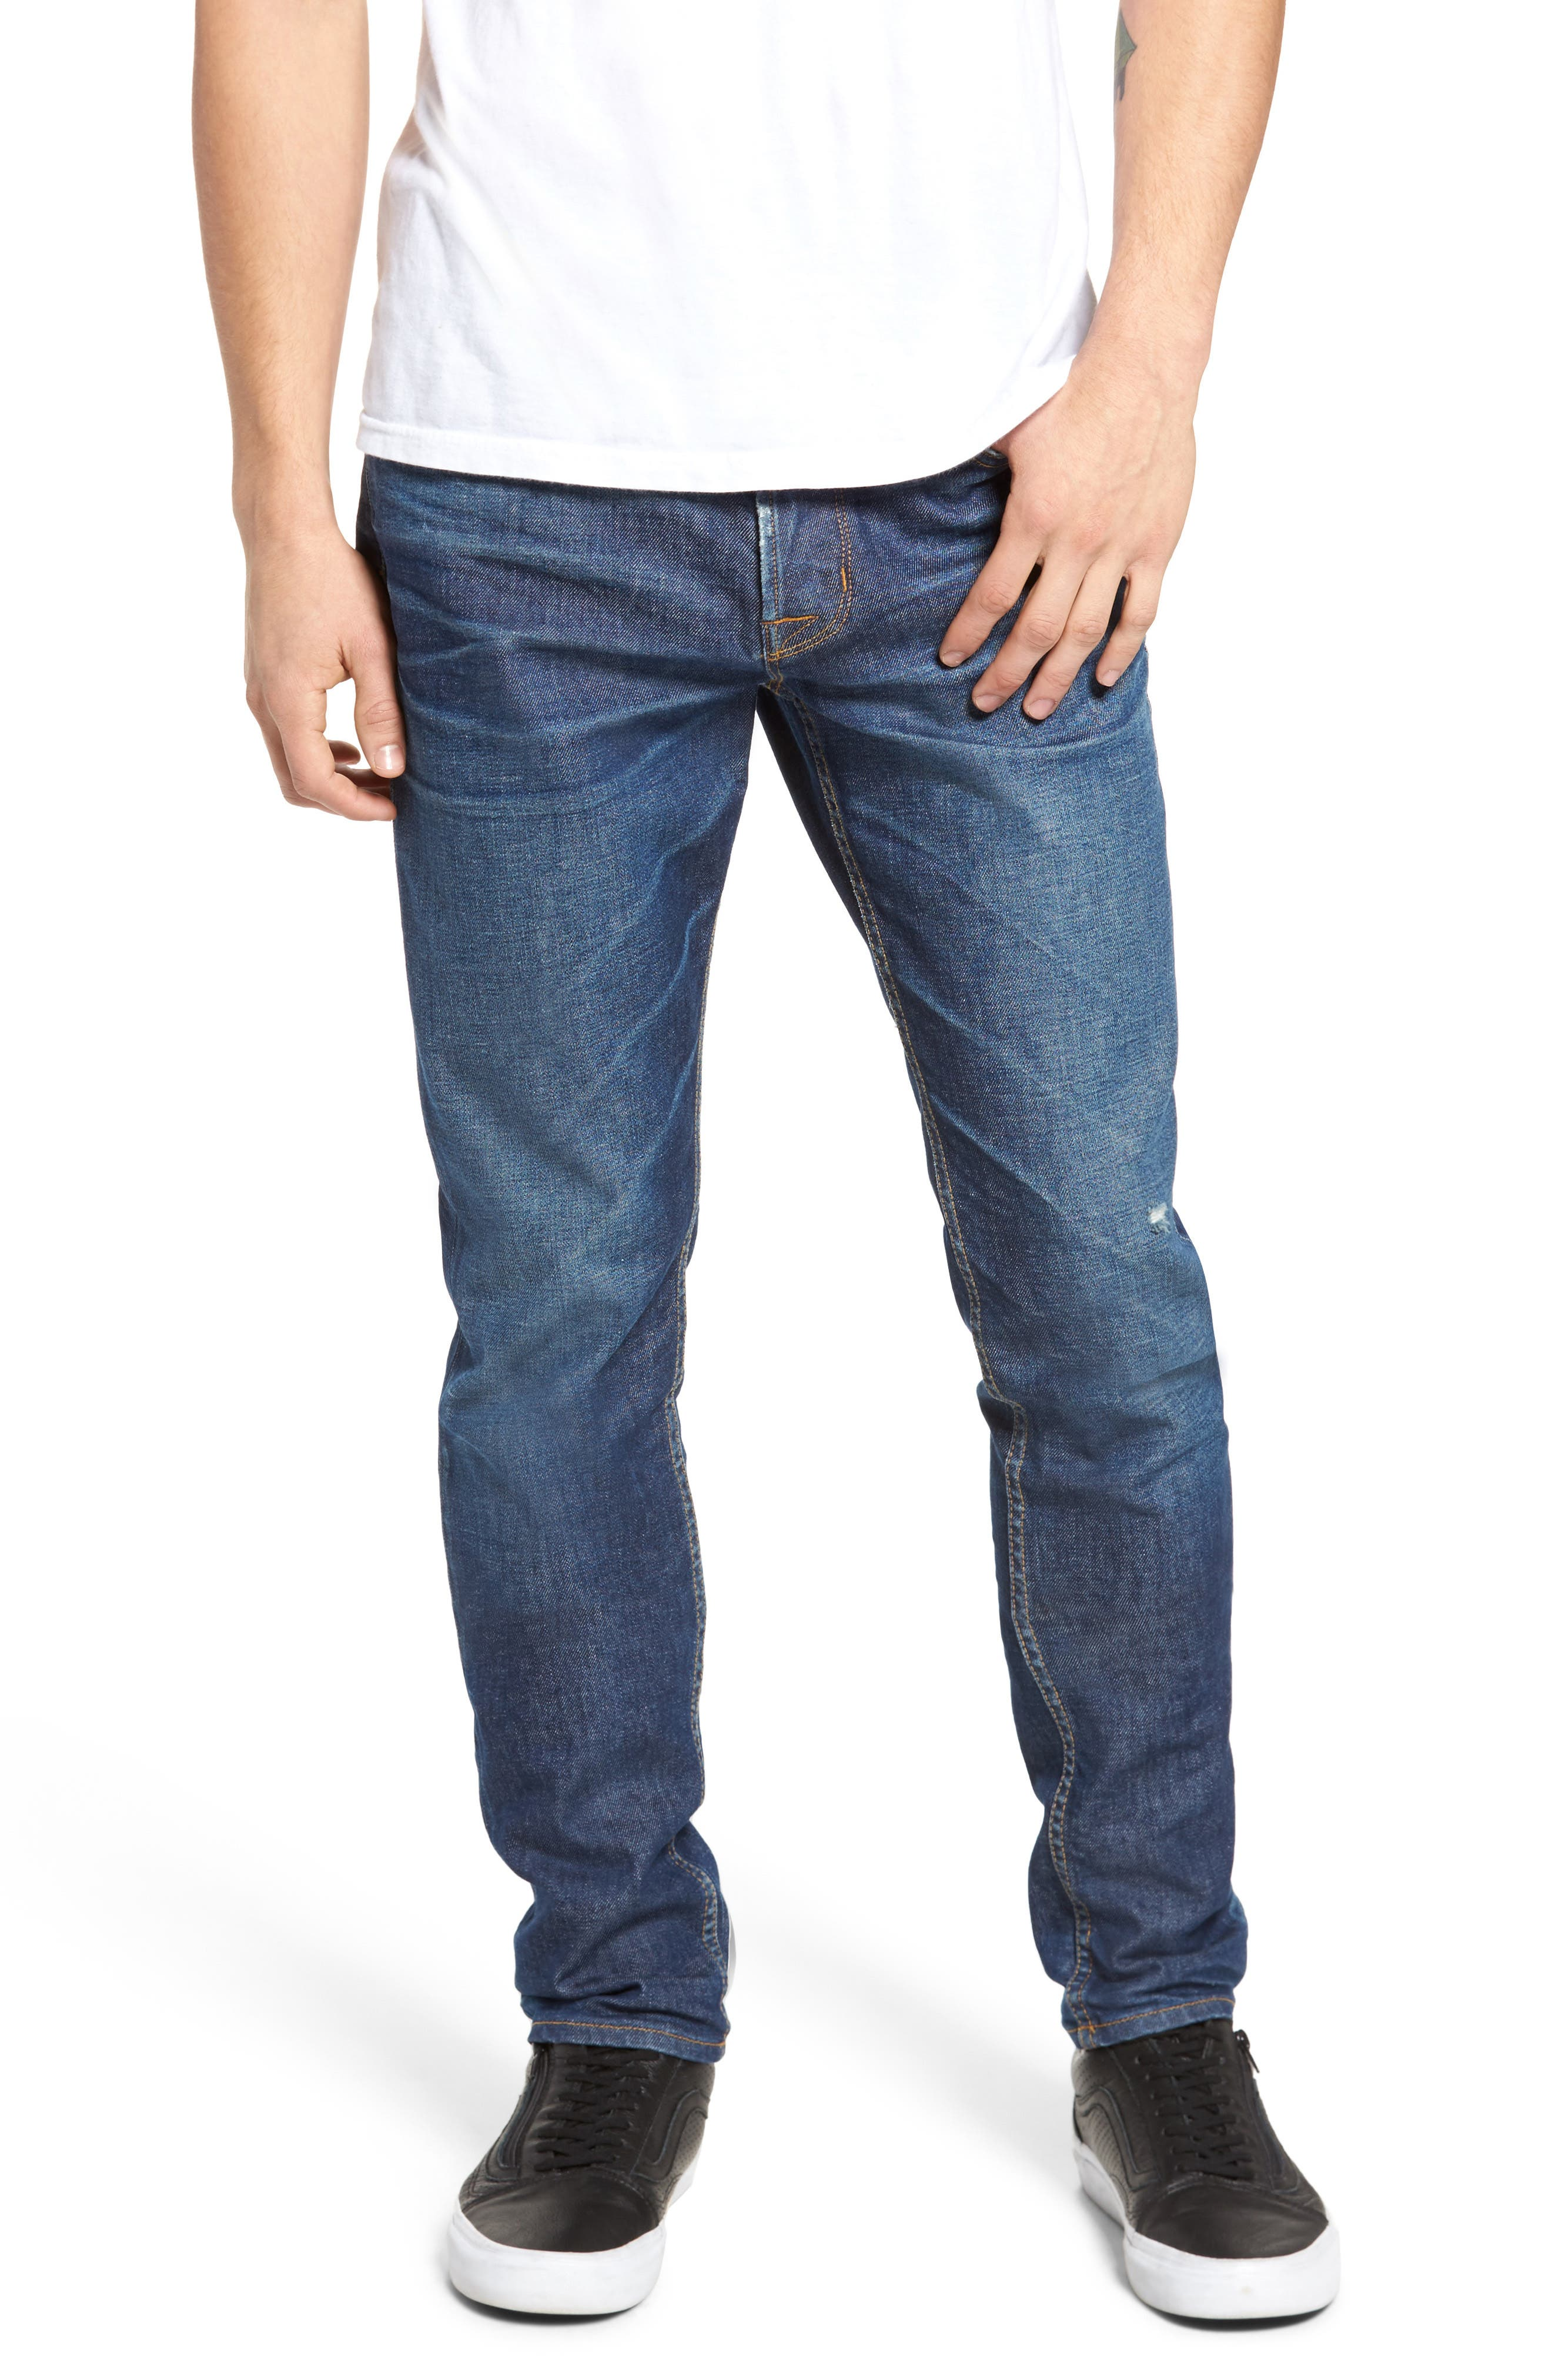 Axl Skinny Fit Jeans,                         Main,                         color, 423